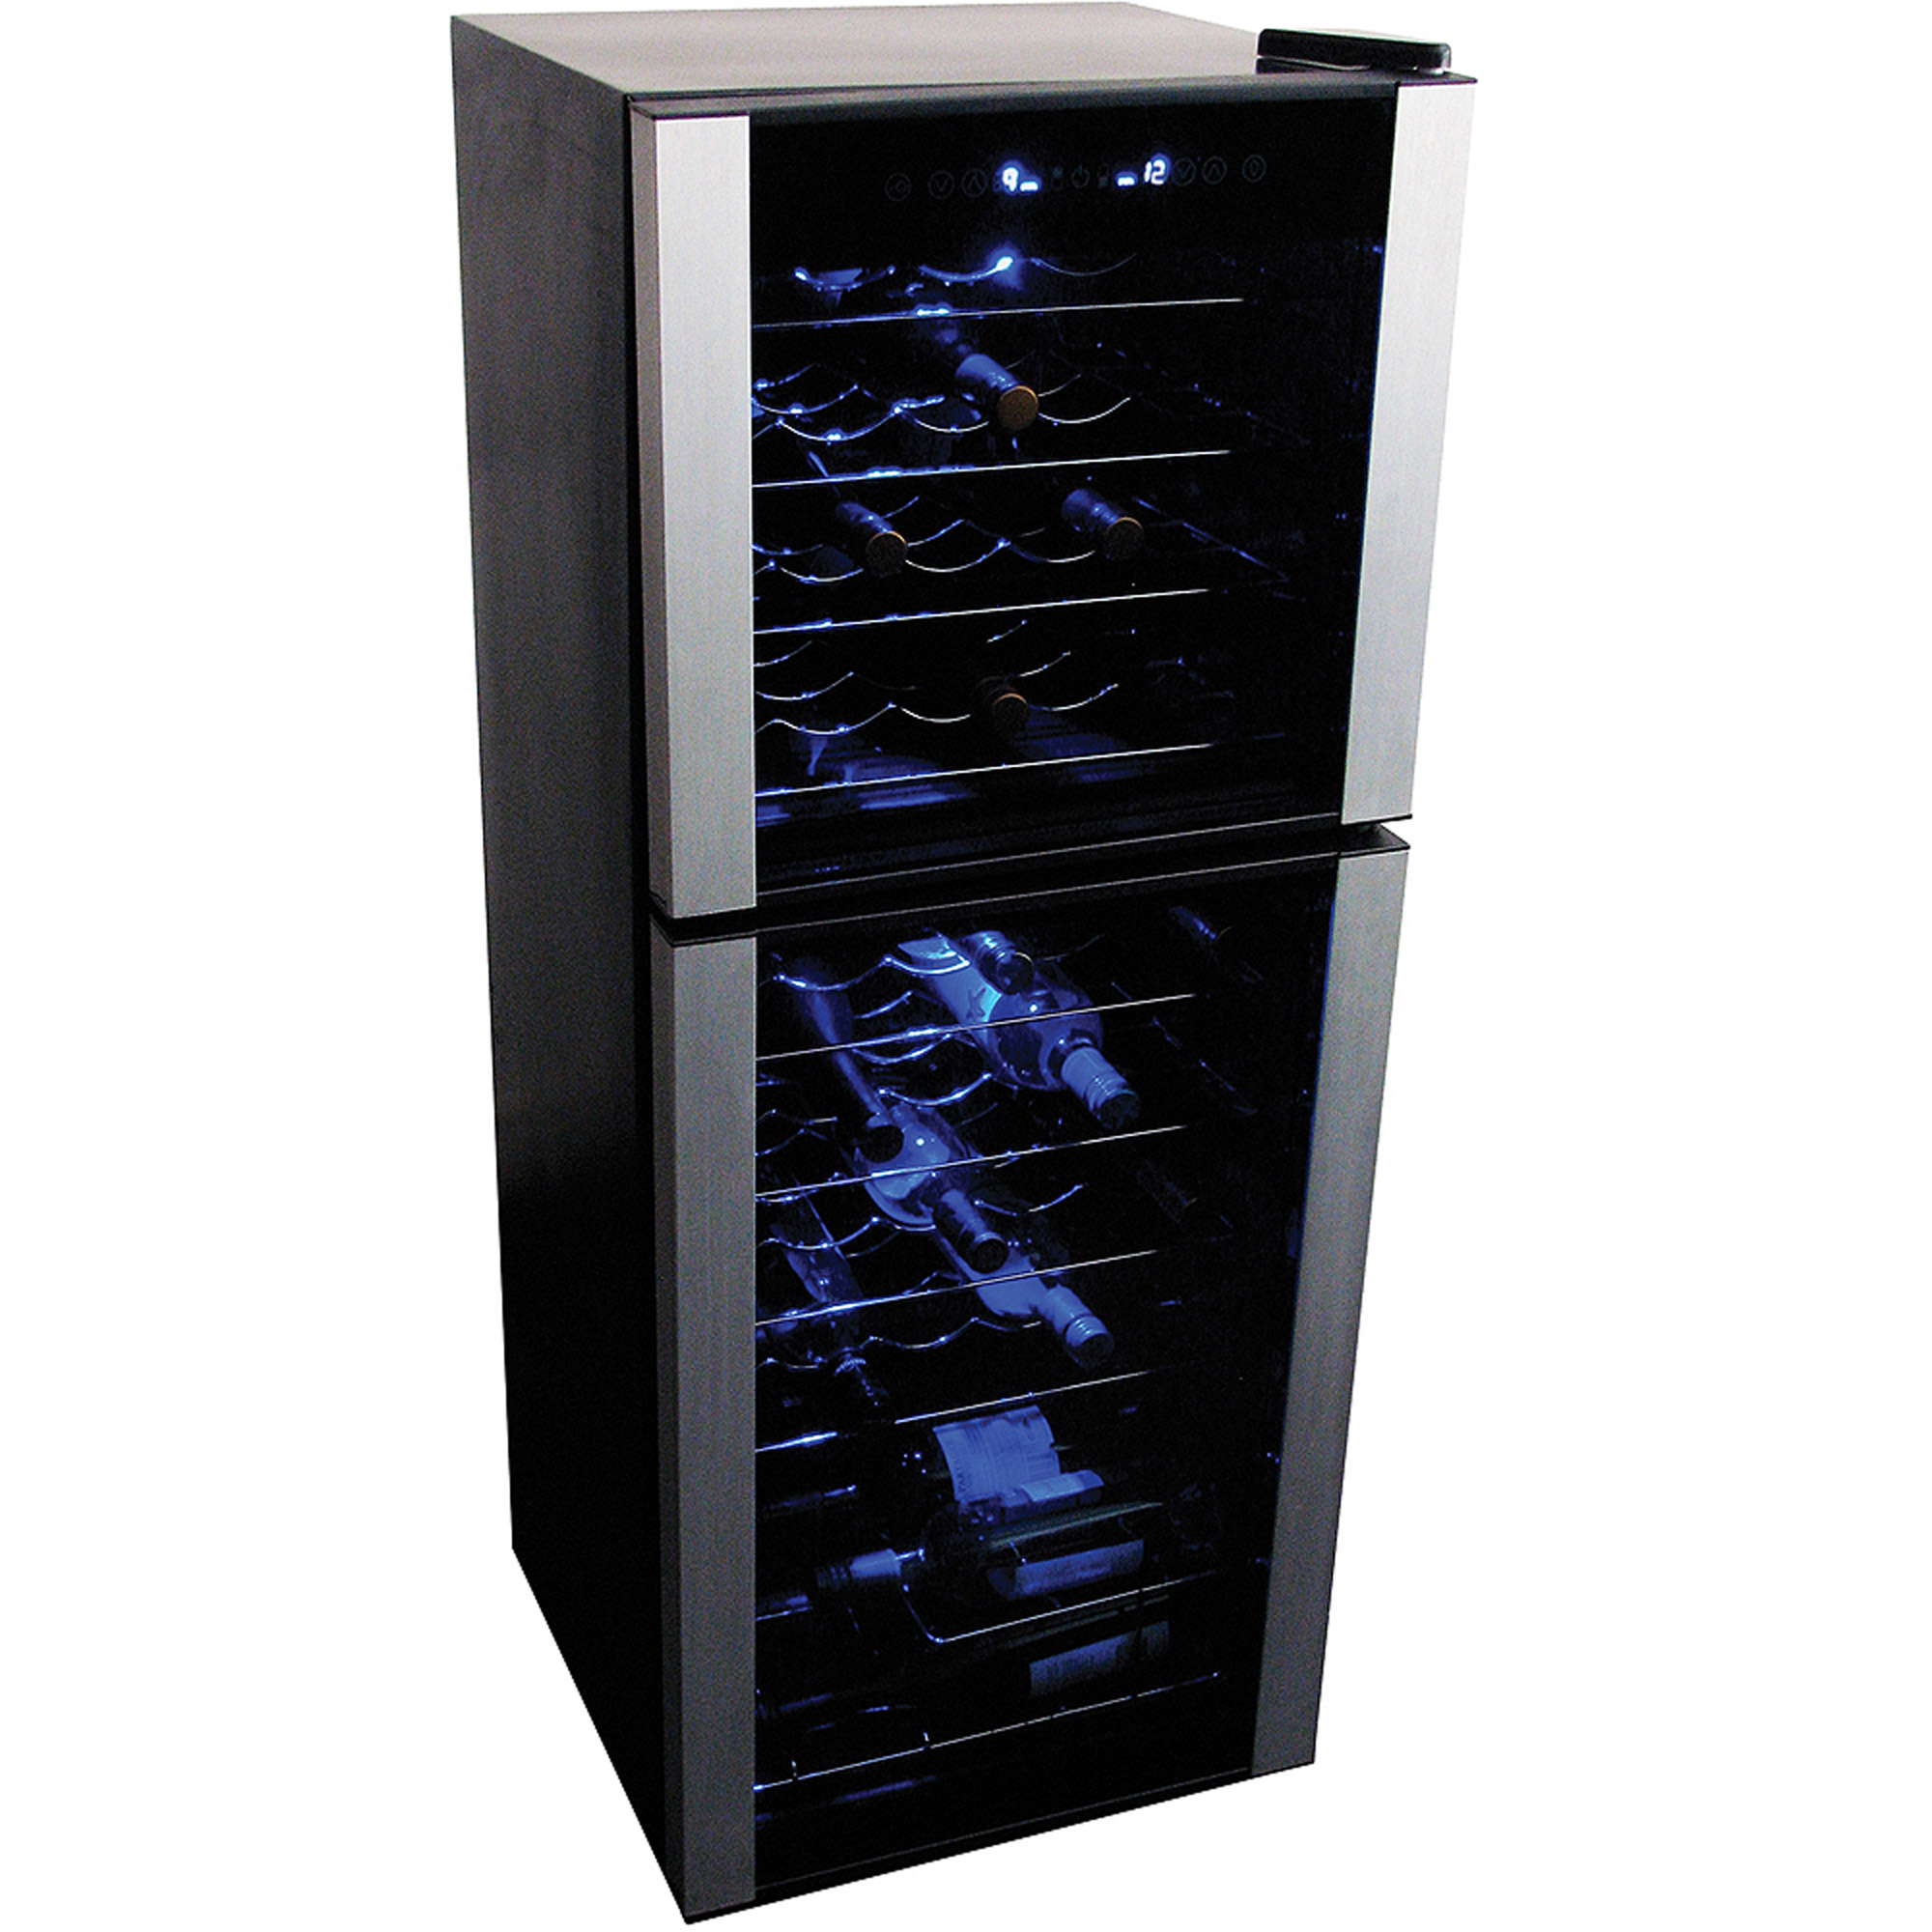 Koolatron Elite Series 45 bottle Dual Zone Wine Fridge WC45, Stainless steel trim